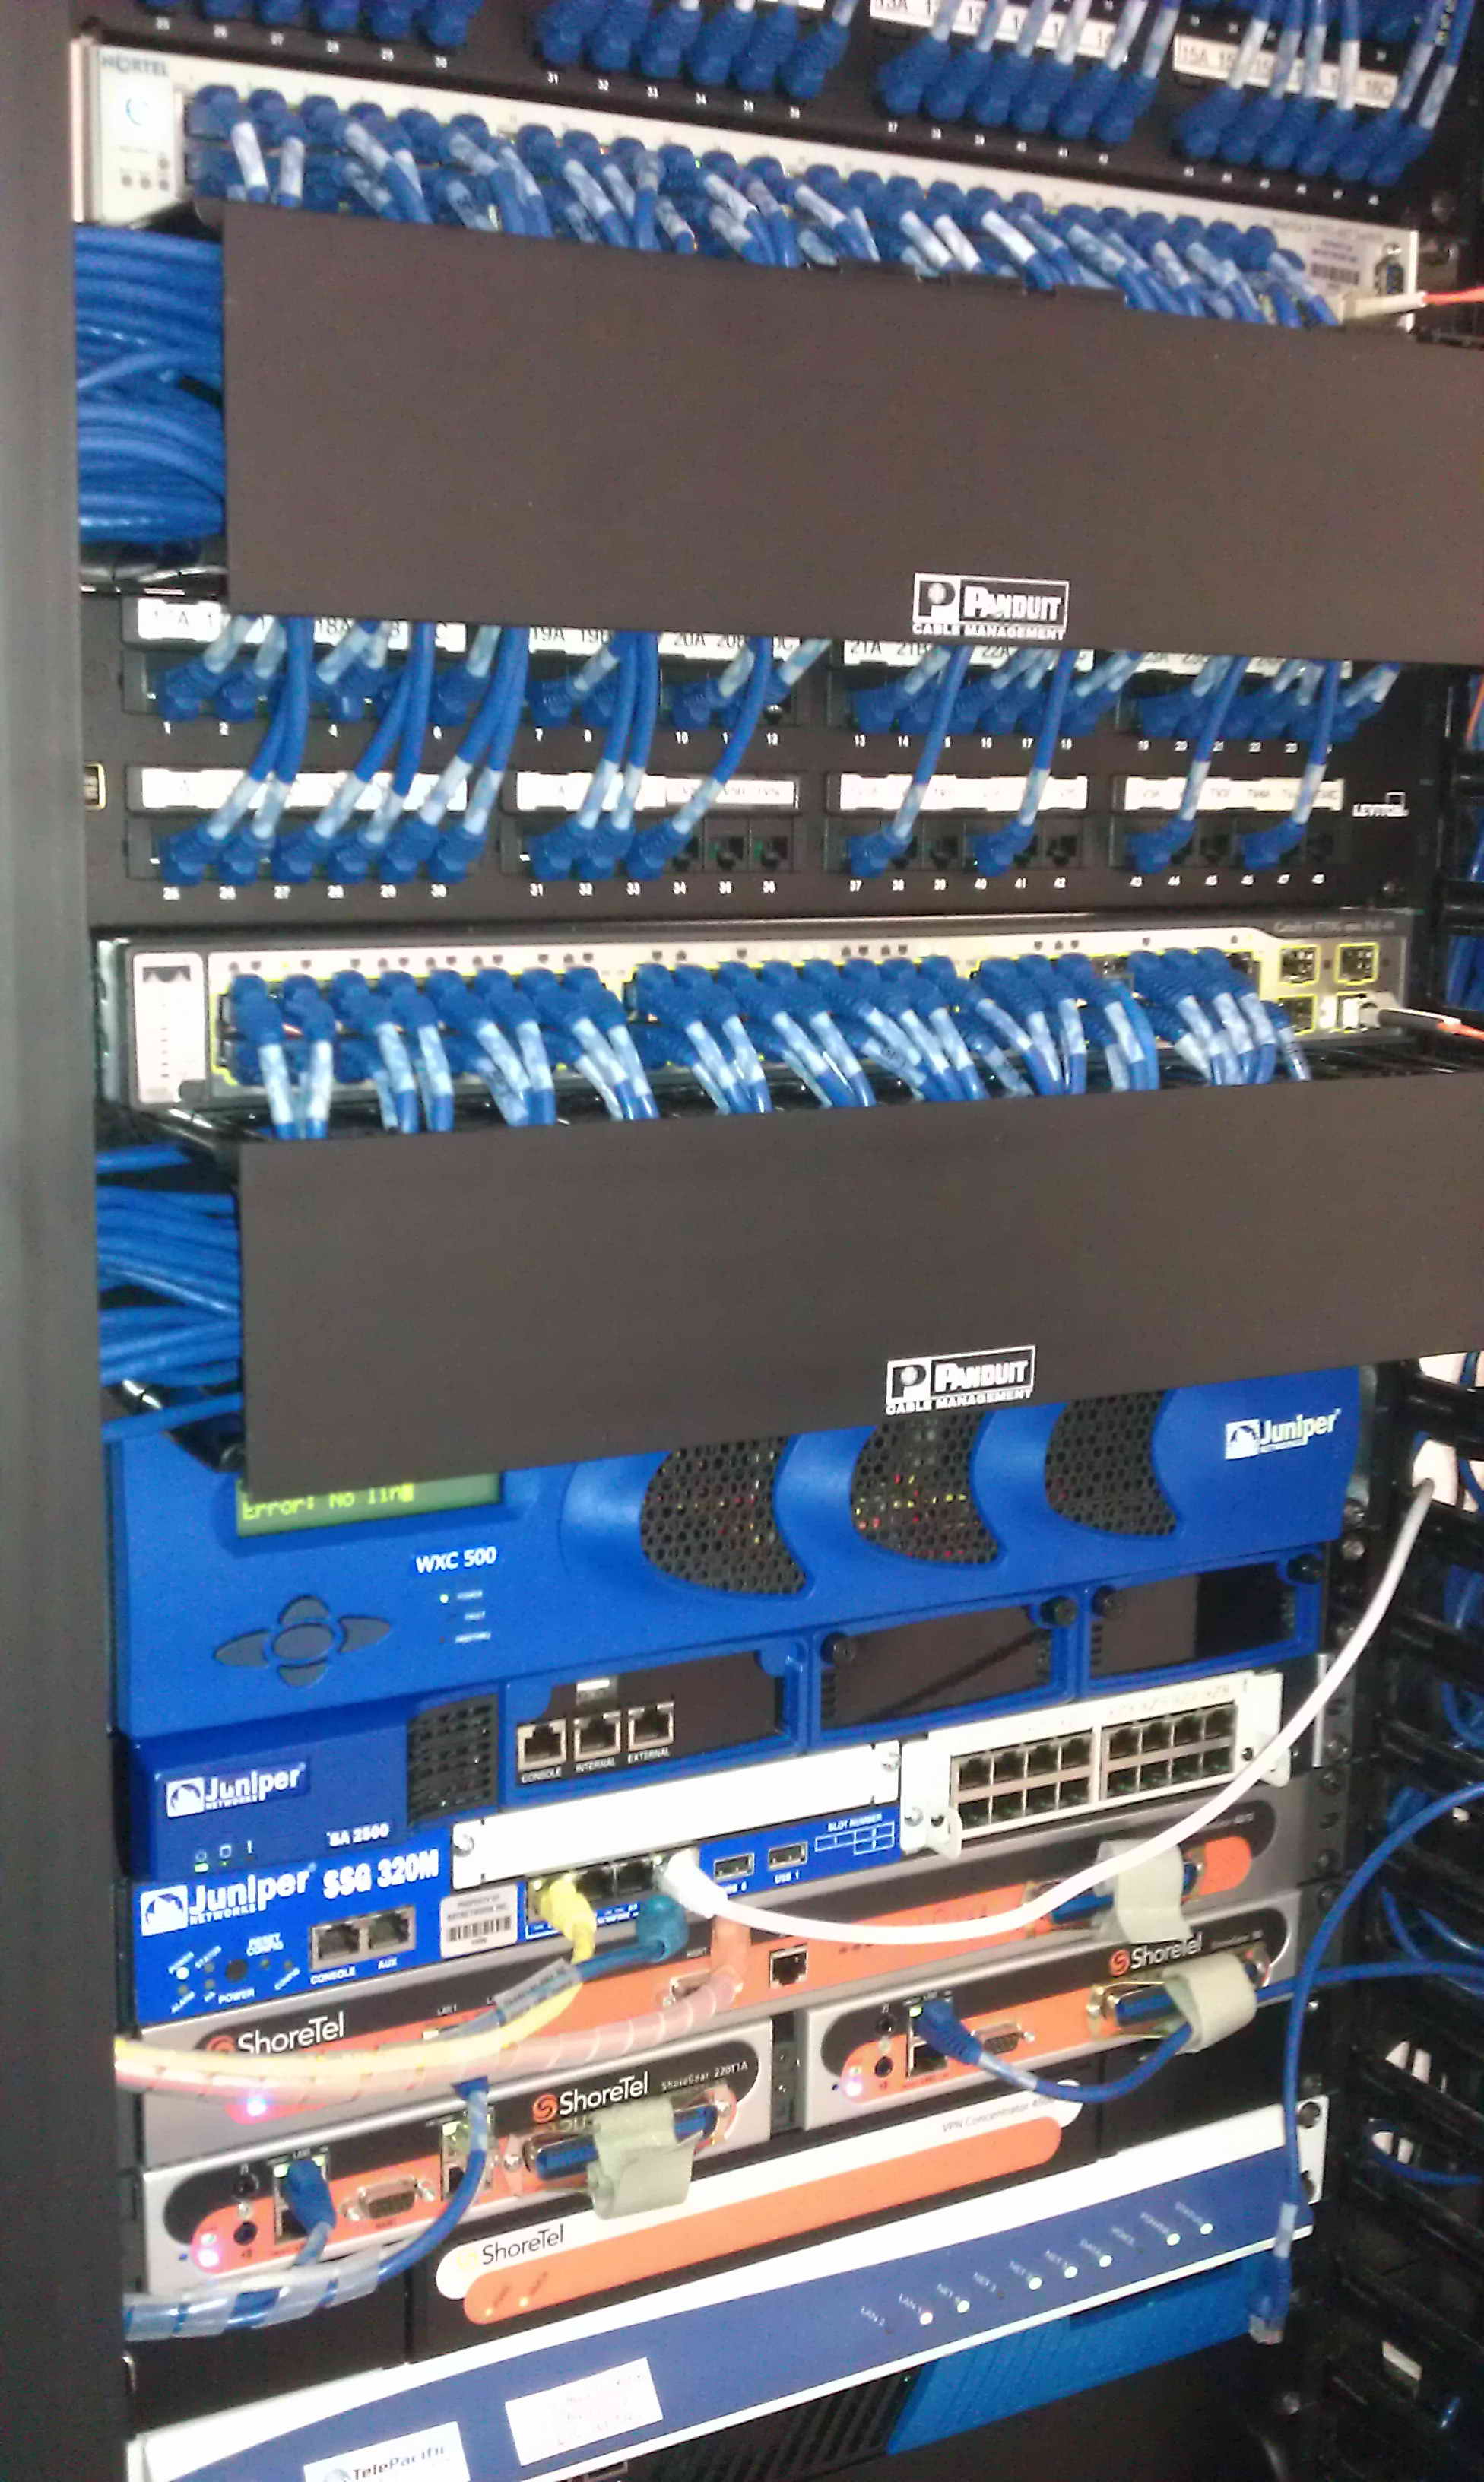 Marseille networks cabling